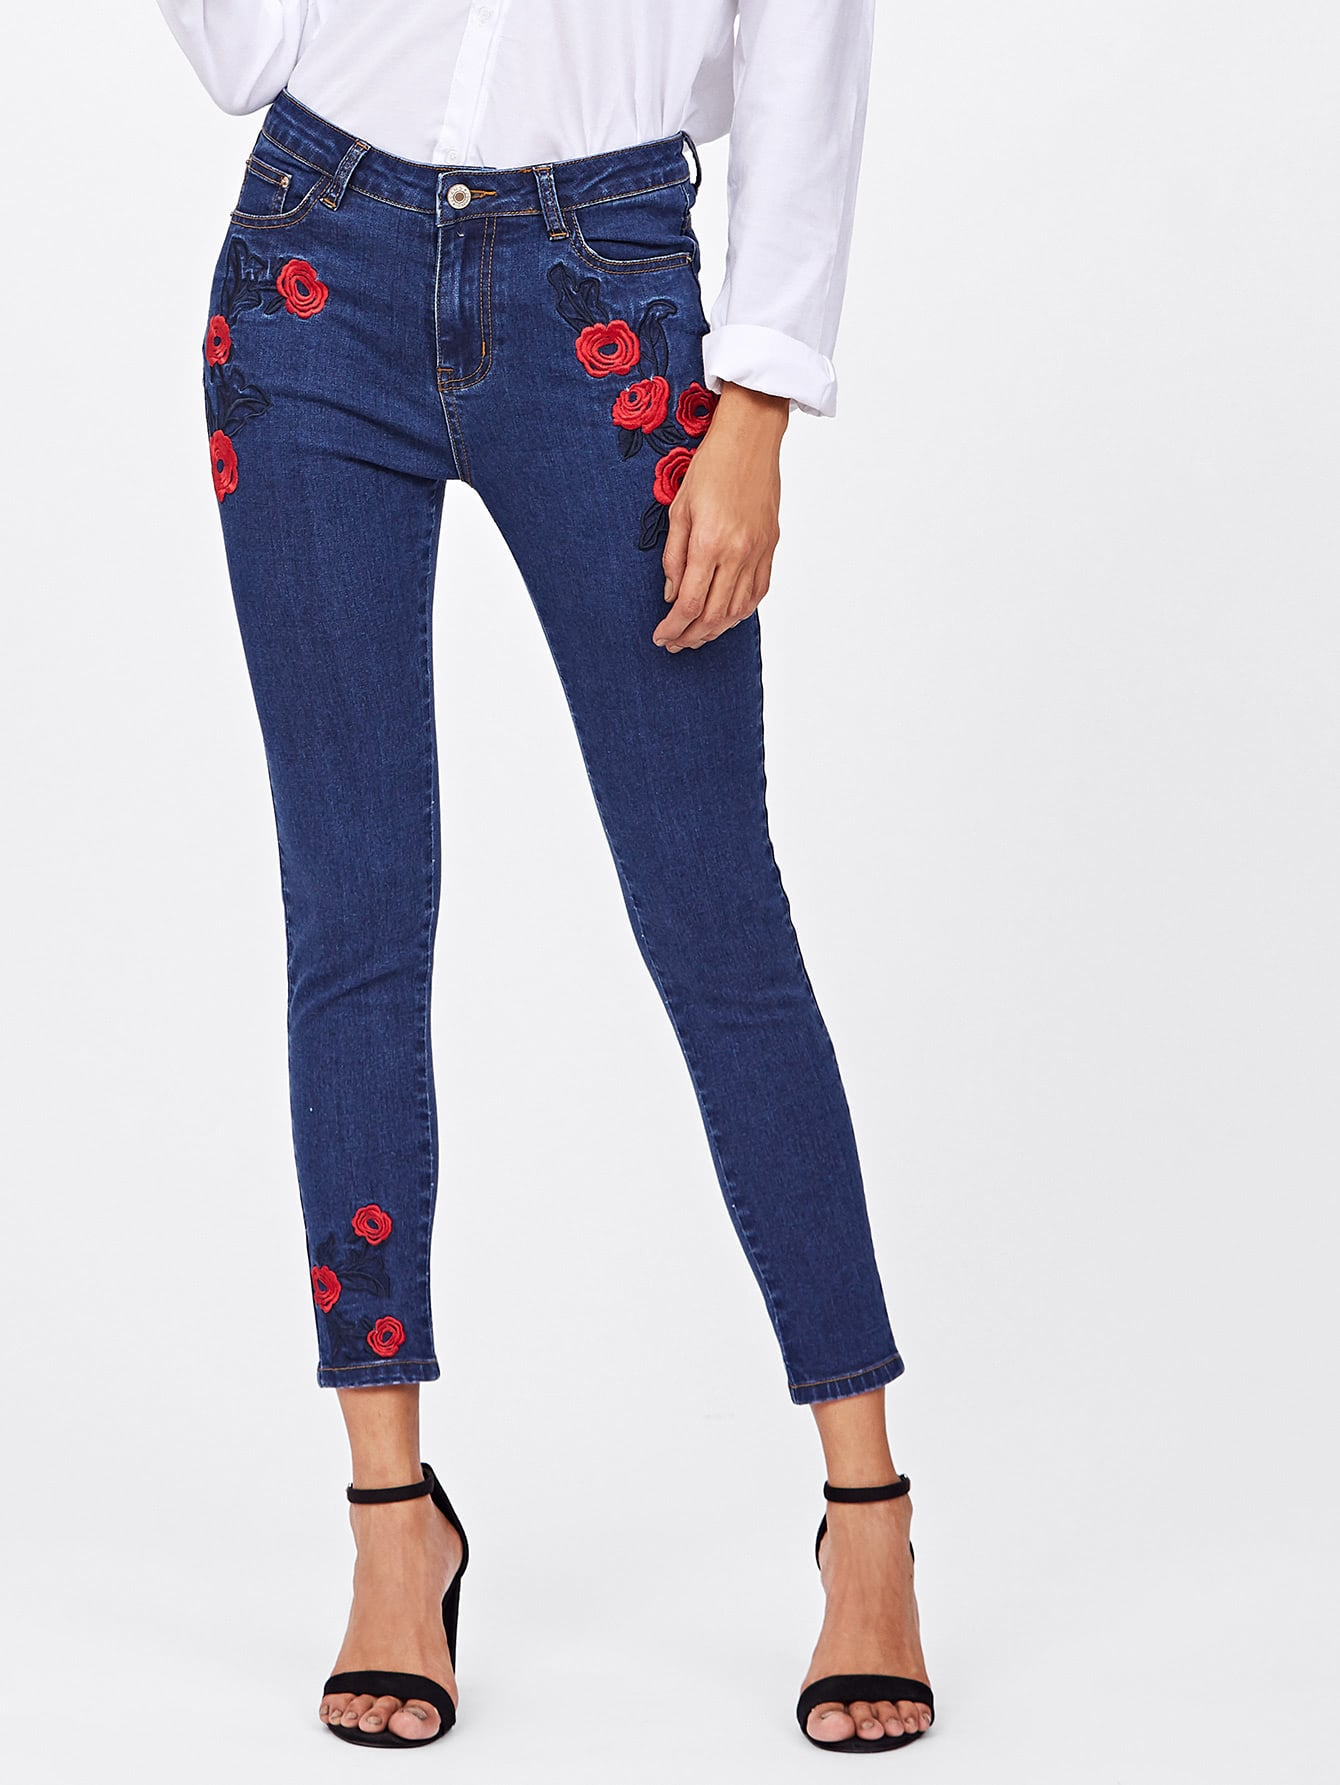 Dark Wash Rose Embroidered Jeans ferzige woman jeans boot cut embroidered high stretch womens flared pants ladies flowers embroidery blue jeans mujer femme jeans